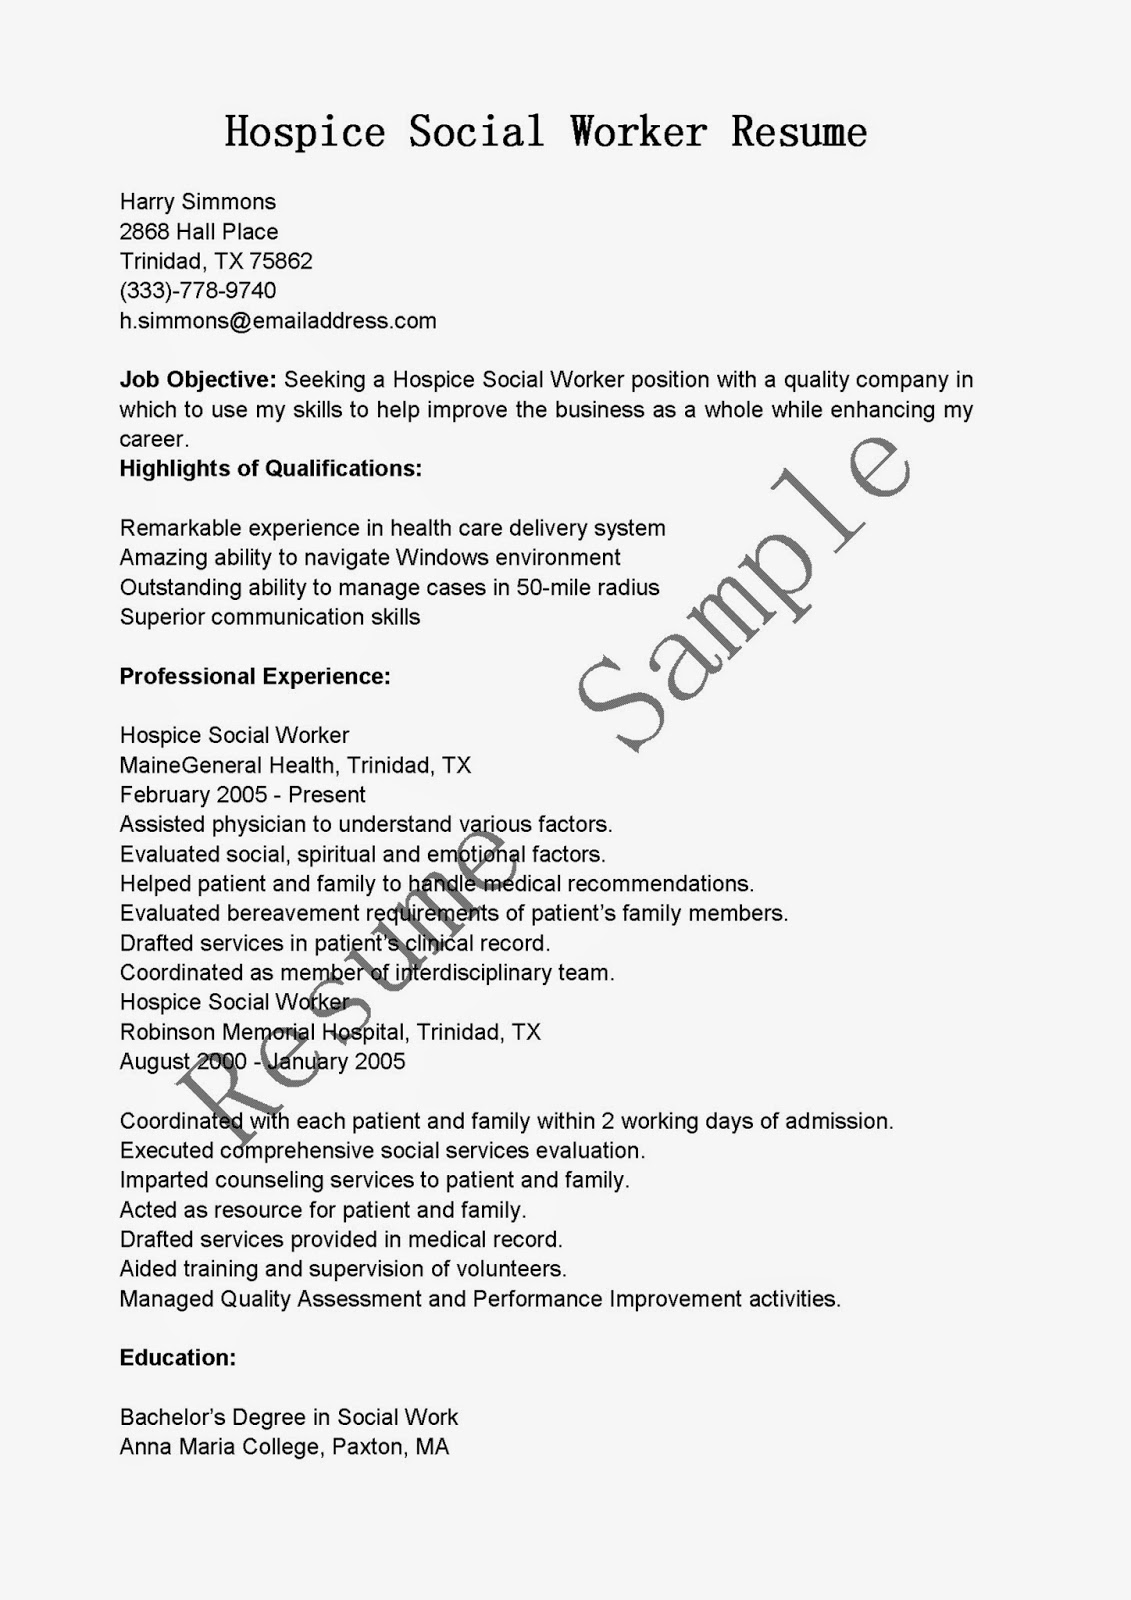 resume samples hospice social worker resume sample